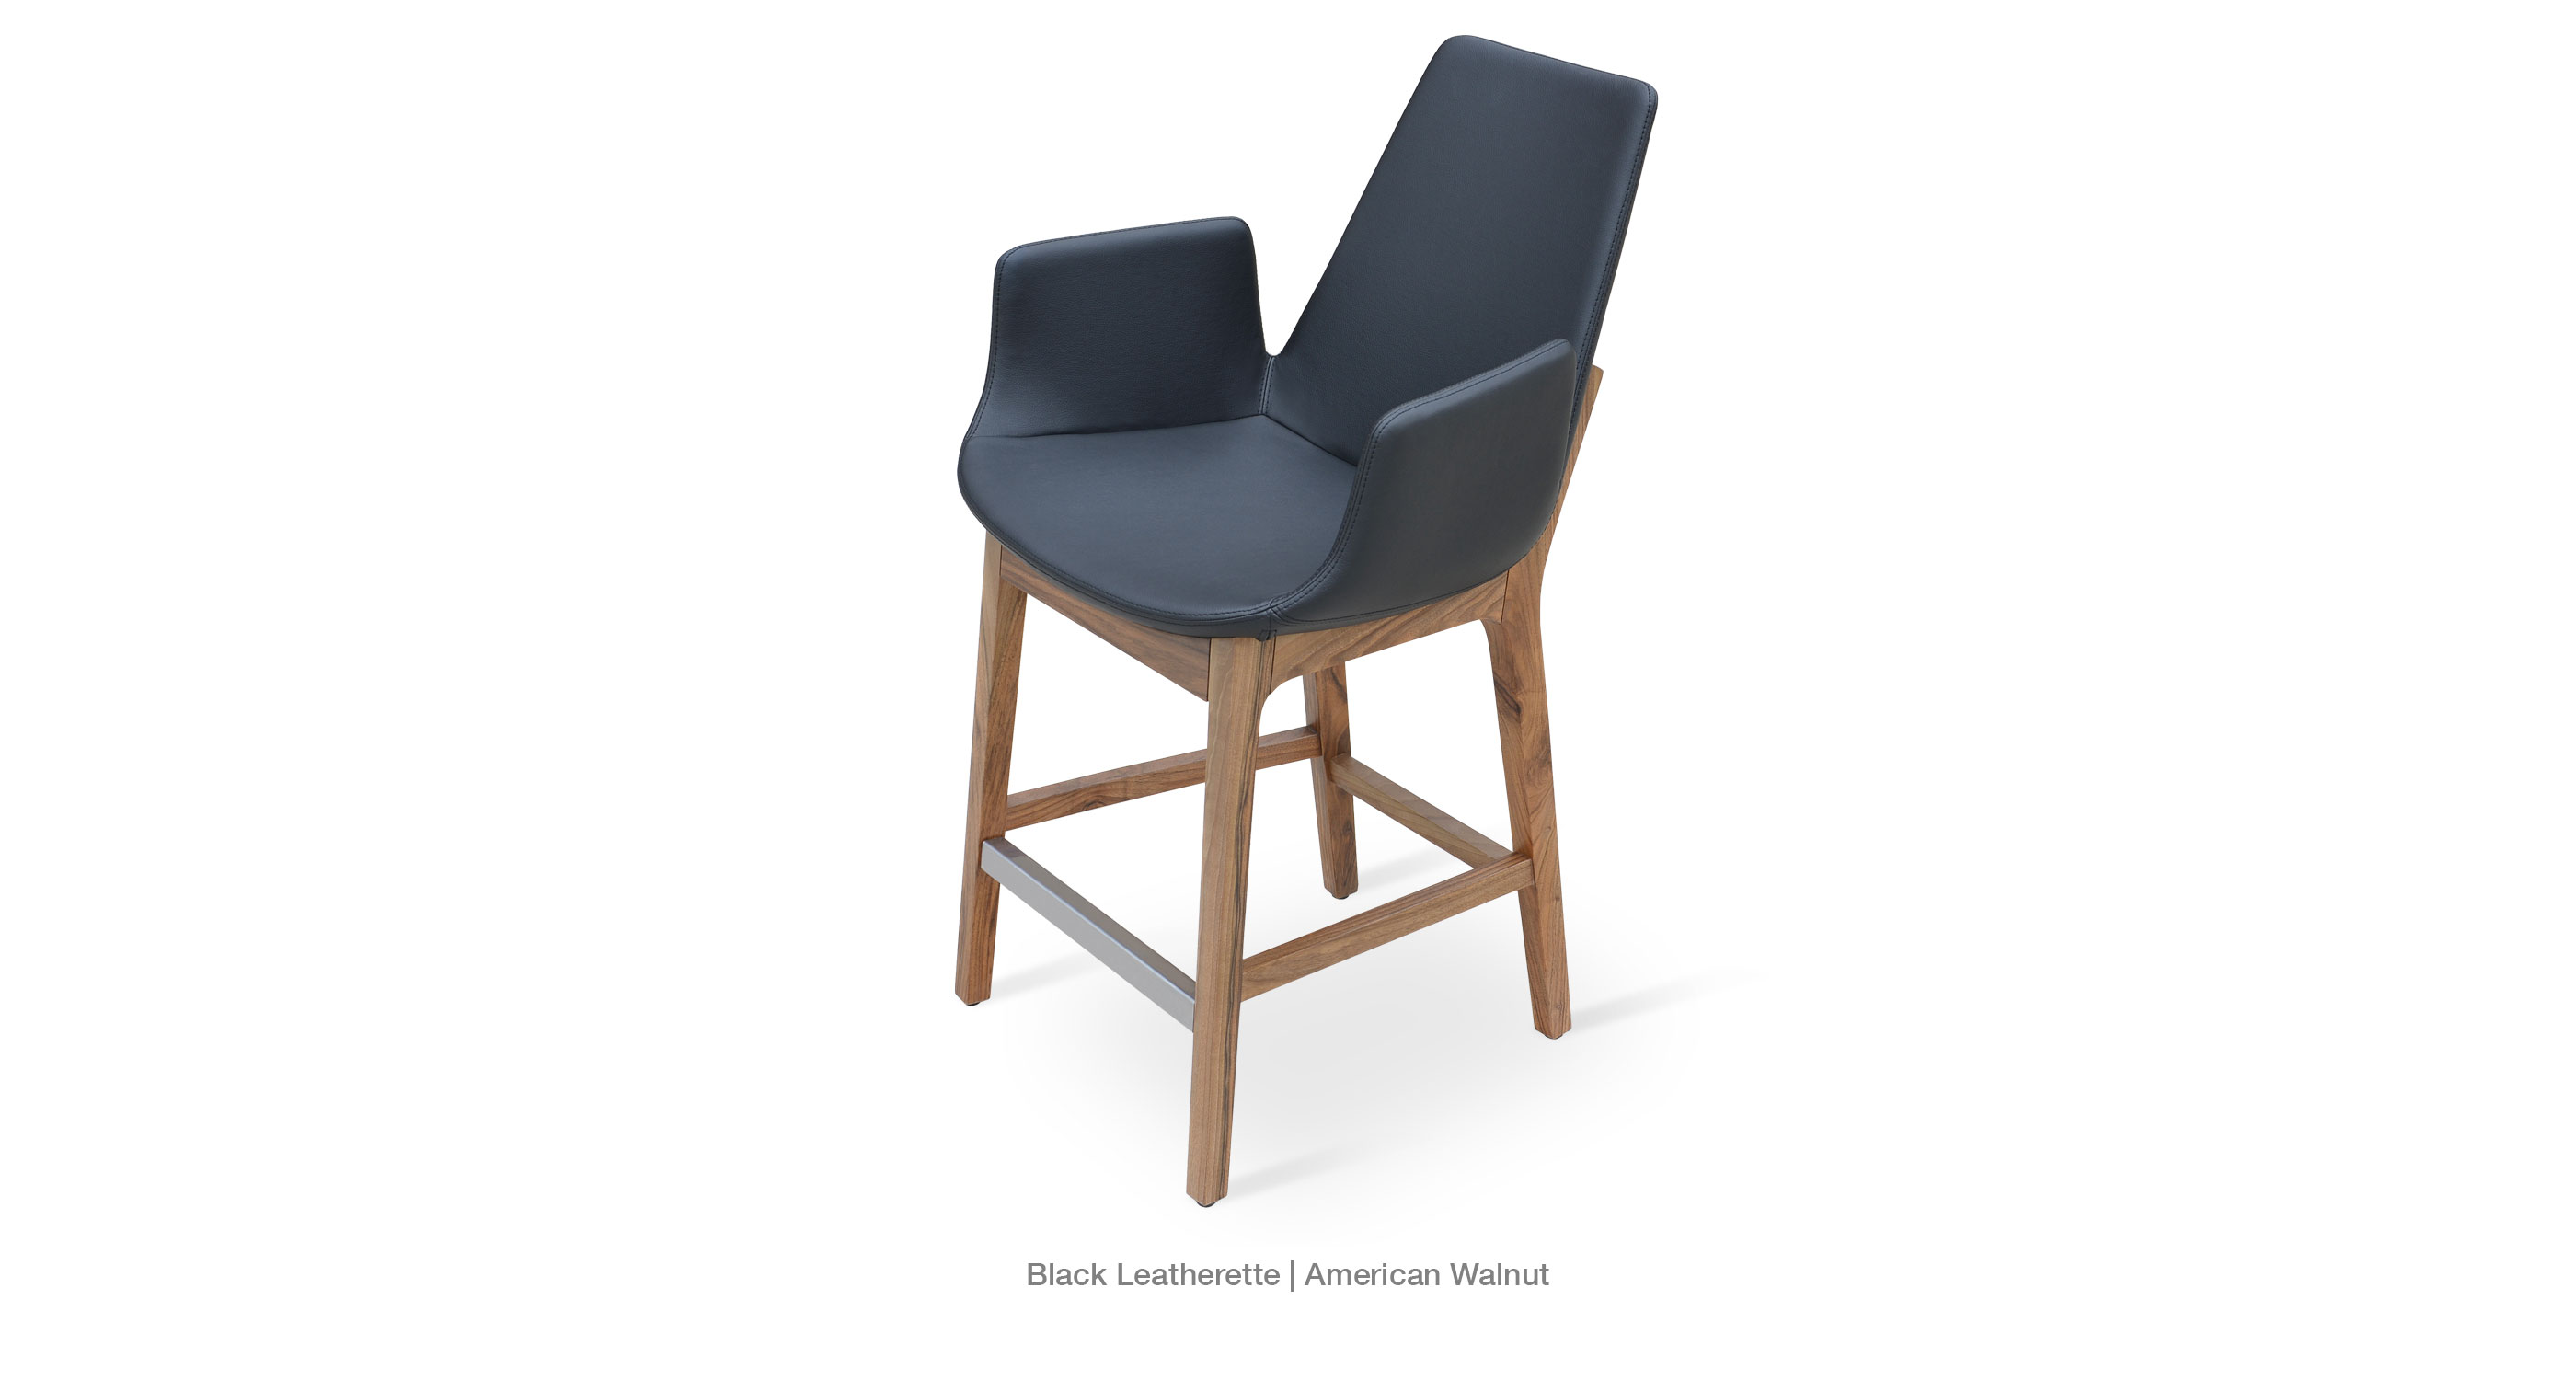 Superb img of Eiffel Wood Arm Contemporary Stool Chairs sohoConcept with #6F4D38 color and 2800x1500 pixels